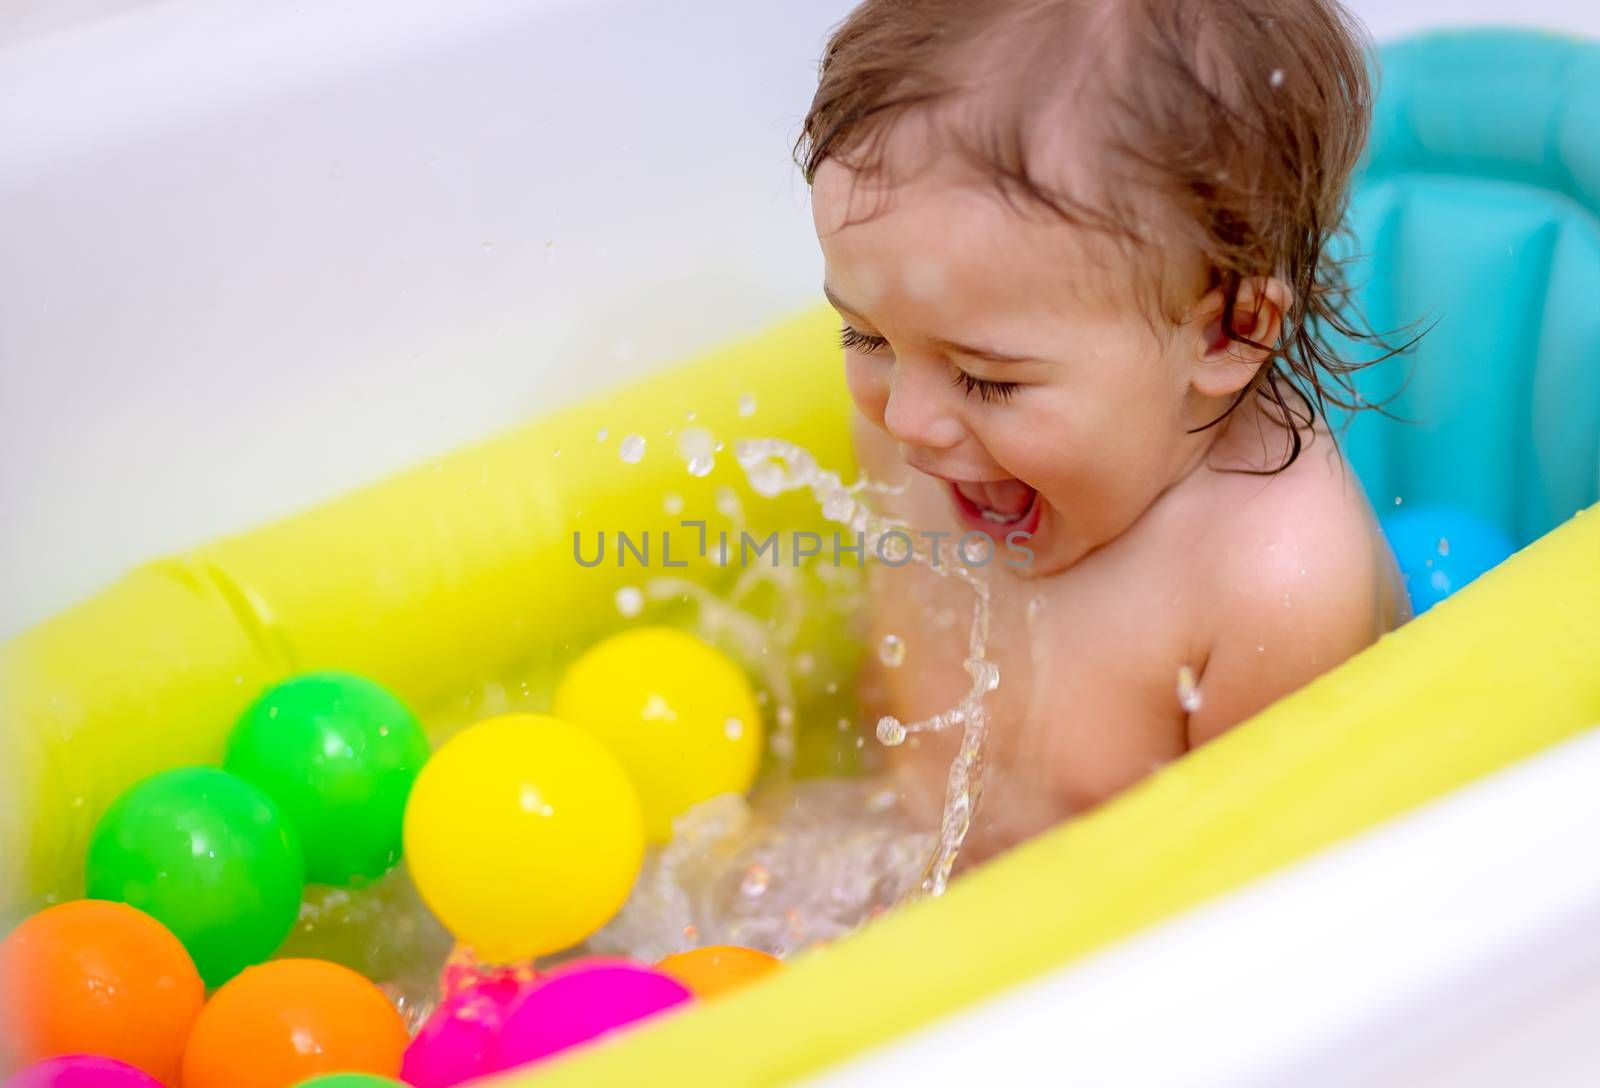 Cute happy little boy bathing in the child's tub, splashes water and enjoys it, healthy childhood, babies hygiene concept